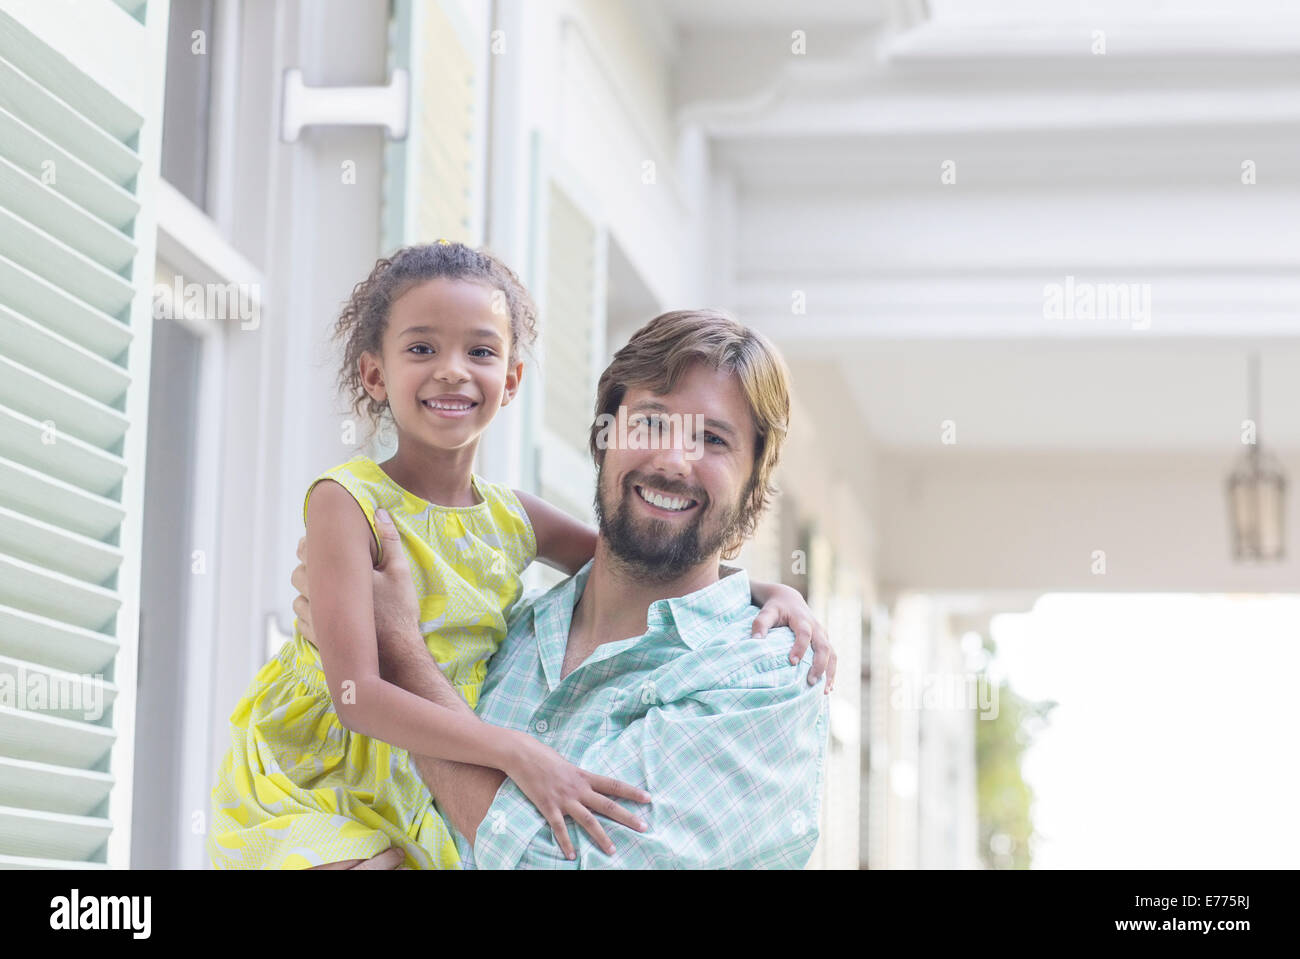 Father holding daughter in arms outdoors - Stock Image